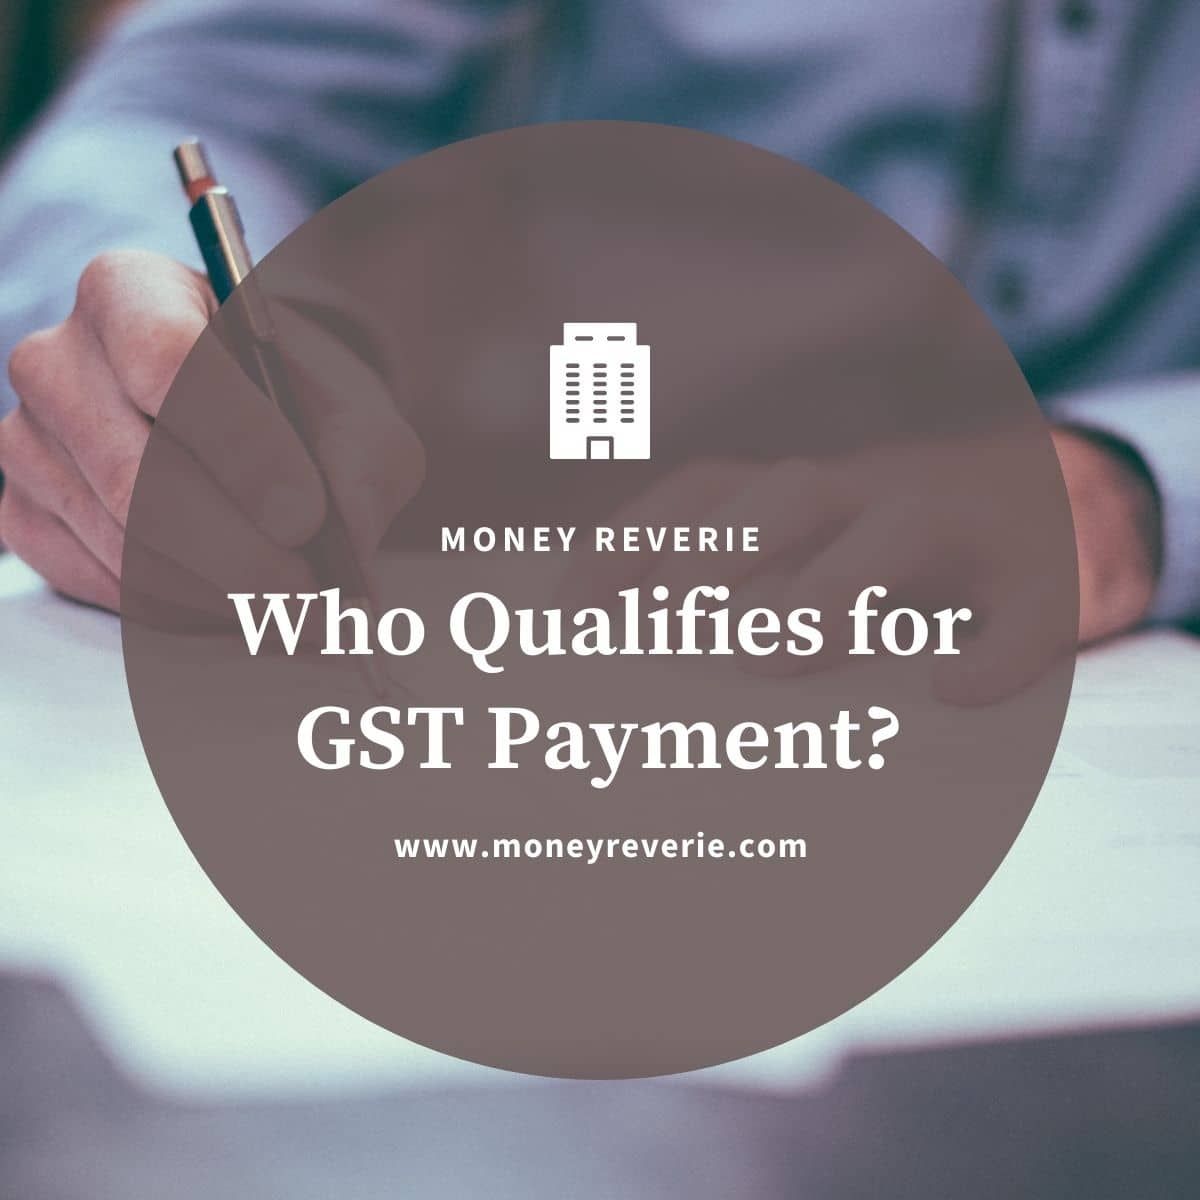 Who Qualifies for GST Payment?